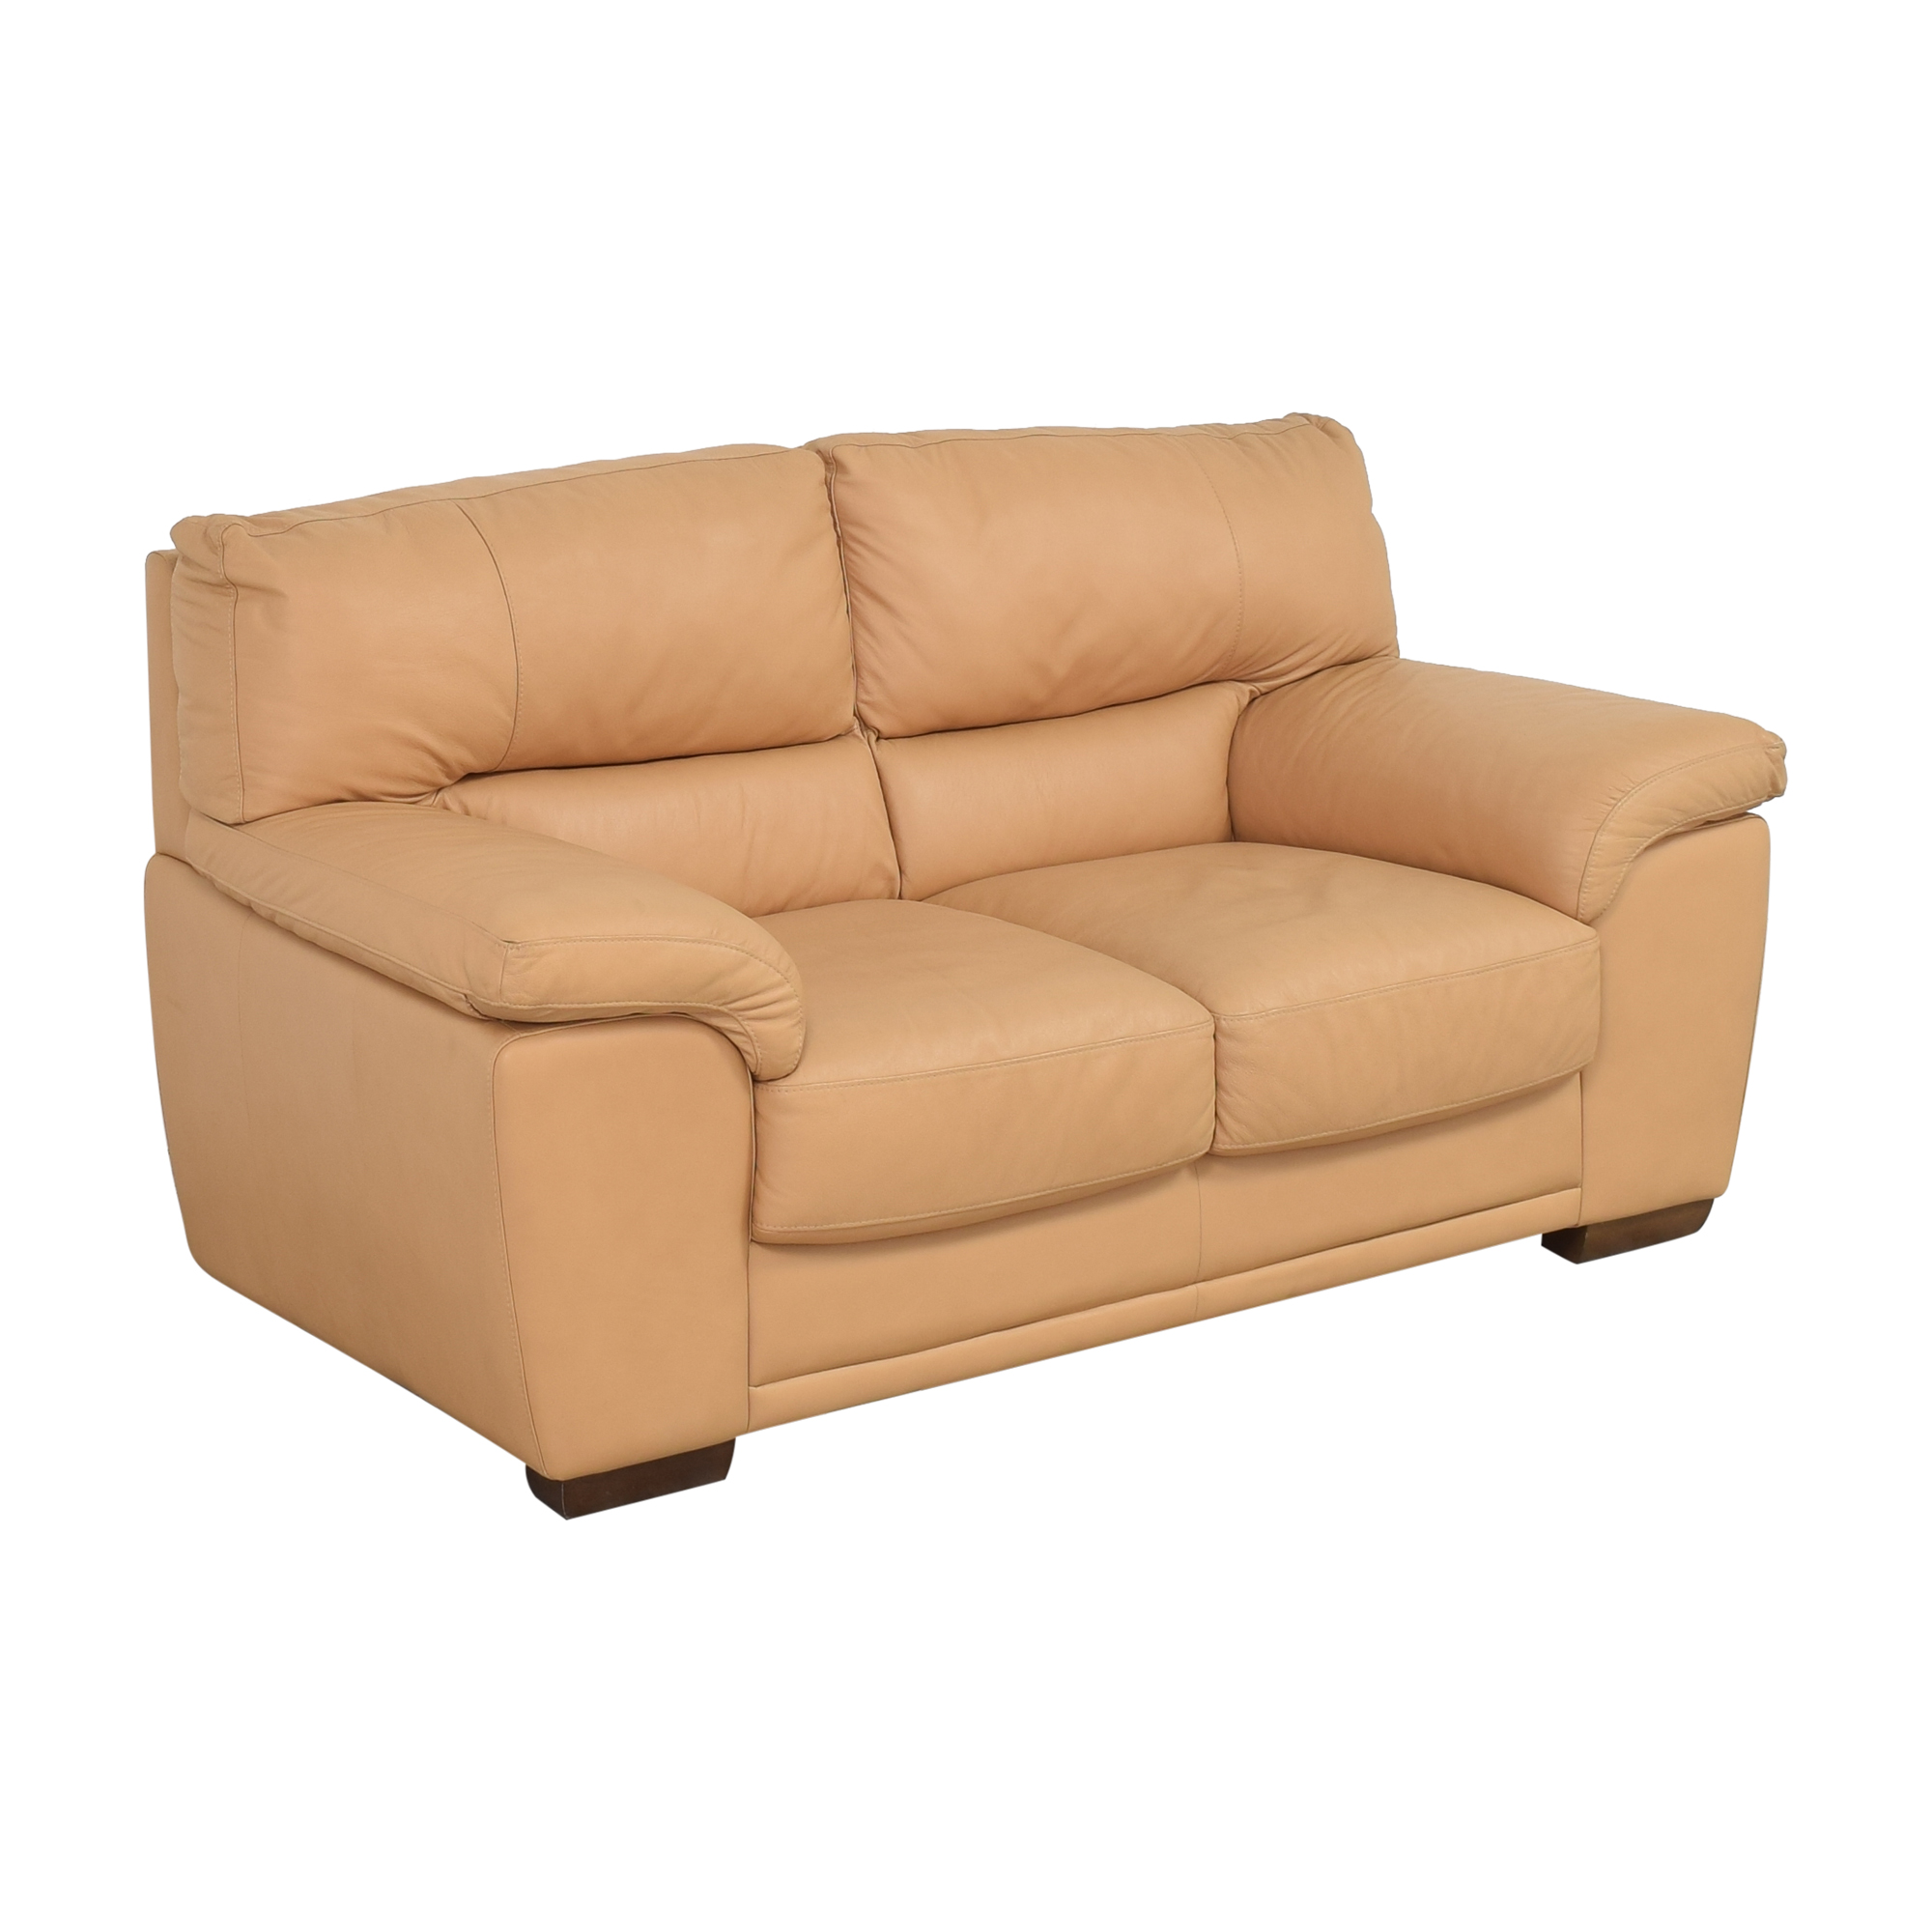 Nicoletti Home Nicoletti Two Cushion Loveseat dimensions